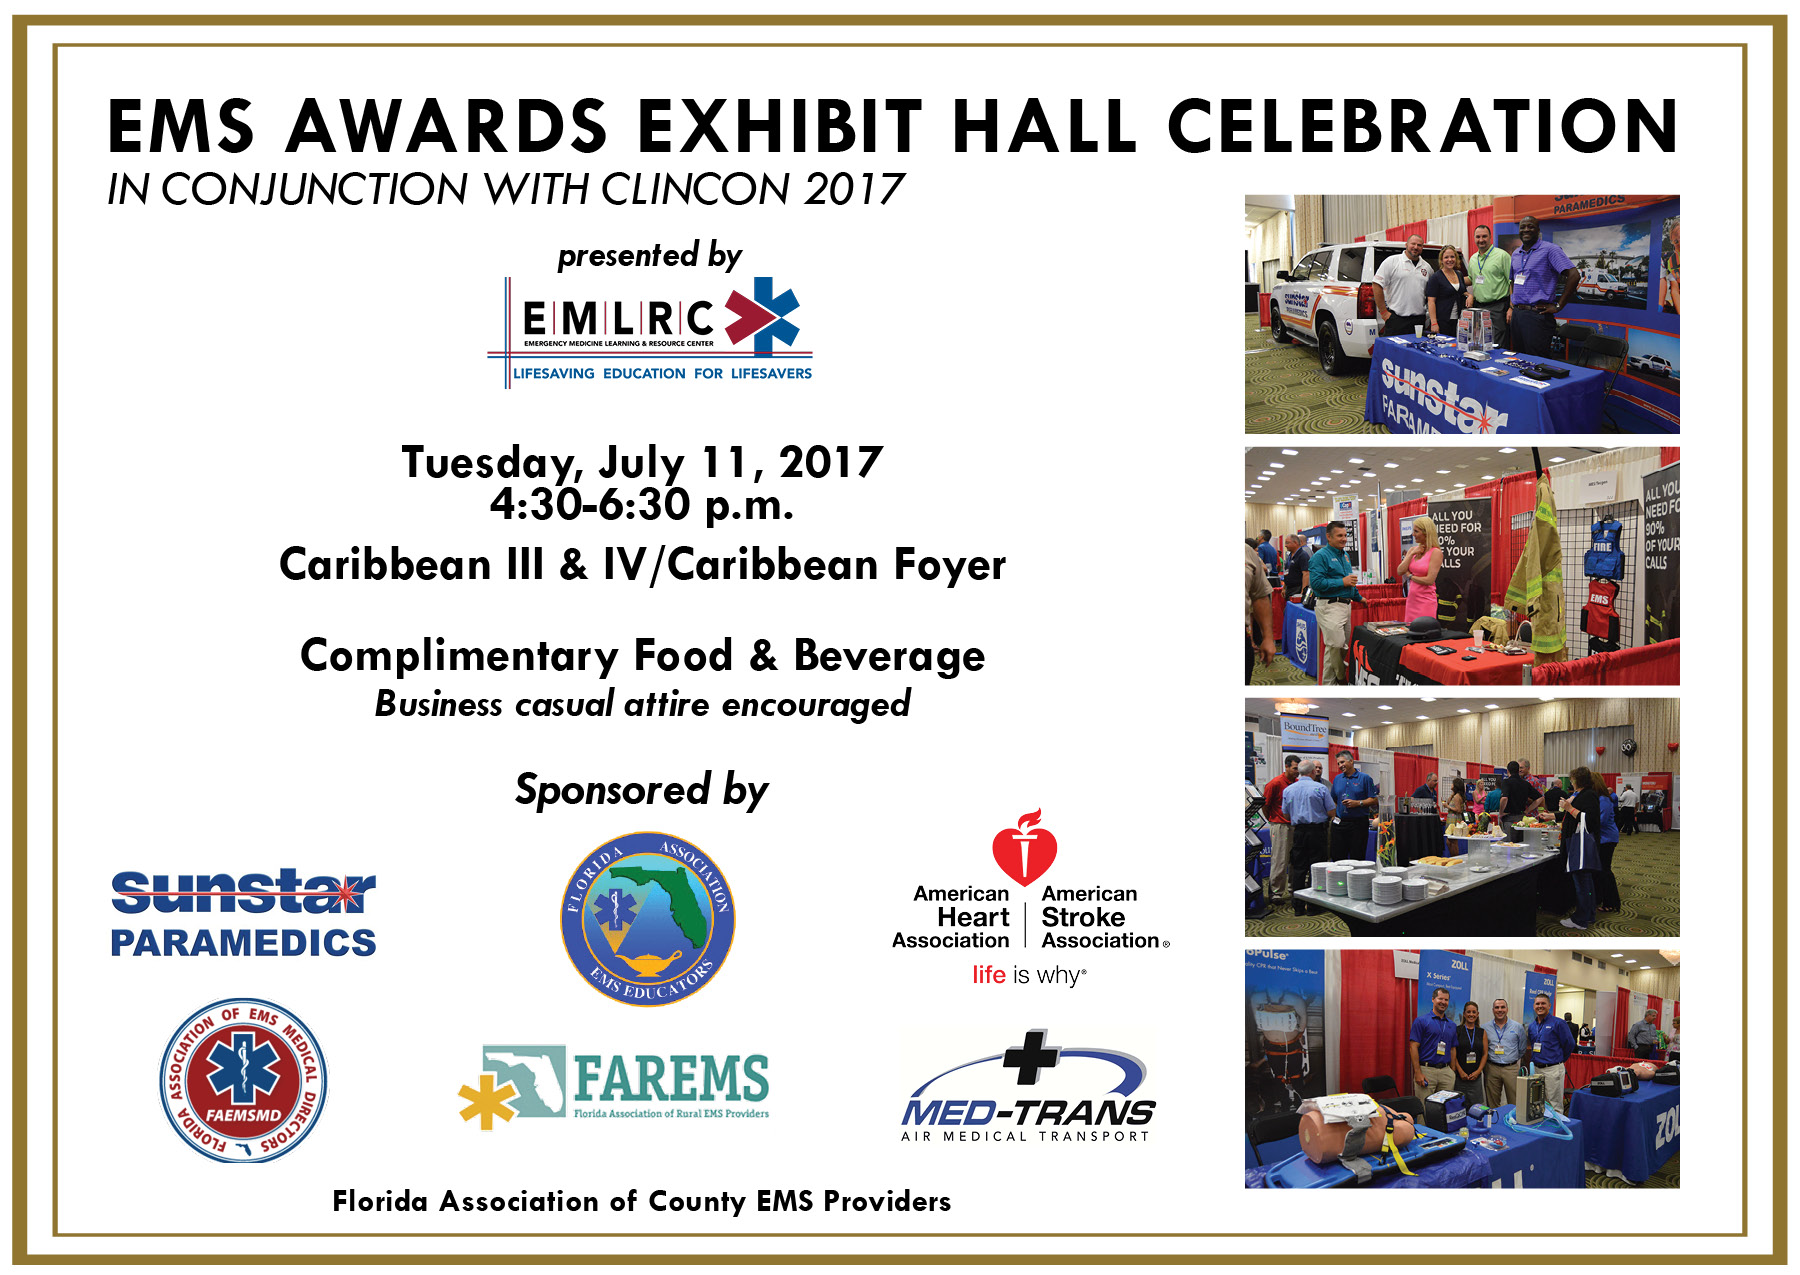 EMS Awards Exhibit Hall Celebration_FINAL